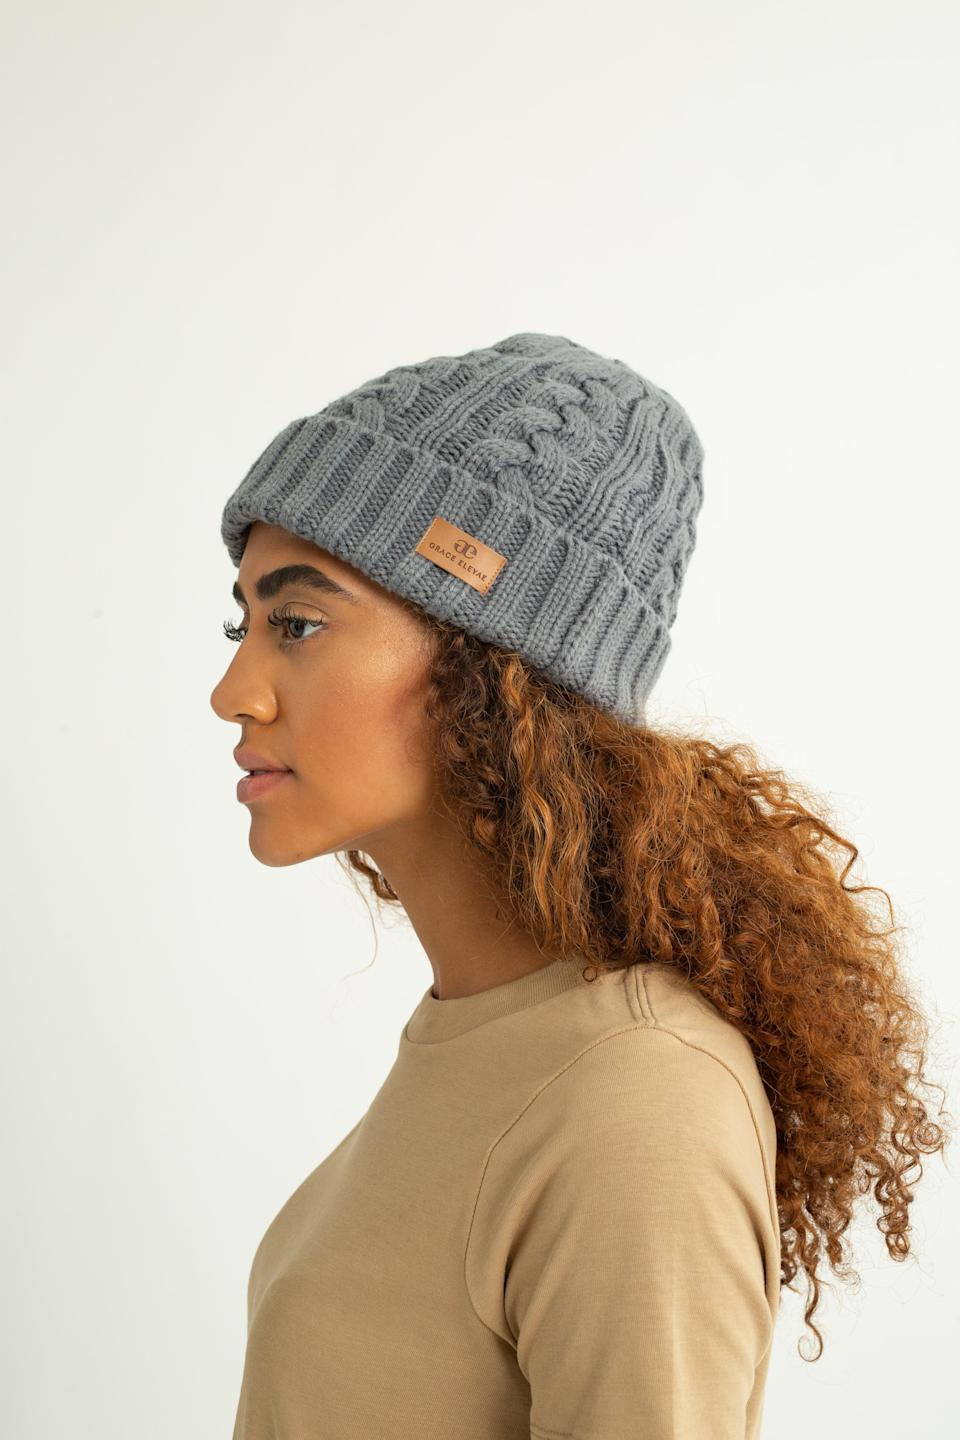 """<h2>Grace Eleyae Dark Gray Foldover Warm Slap</h2><br>Torn on which new curl-friendly hat to purchase? Just know that <a href=""""https://www.graceeleyae.com/collections/oprahs-favorite-things-2020"""" rel=""""nofollow noopener"""" target=""""_blank"""" data-ylk=""""slk:Oprah vouches for this one from Grace Eleyae."""" class=""""link rapid-noclick-resp"""">Oprah vouches for this one from Grace Eleyae.</a> The brand is notorious for its line of """"Slaps,"""" a.k.a. satin-lined caps, and recently added a weather-friendly collection. We love this knitted option, which features the brand's signature satin interior but will still keep your head warm. It also has hidden adjustable drawstrings so you can tighten your hat as needed.<br><br><strong>Grace Eleyae</strong> Dark Grey Foldover Warm Slap, $, available at <a href=""""https://www.graceeleyae.com/collections/foldover-warm-slap/products/dark-gray-foldover-warm-slap-1"""" rel=""""nofollow noopener"""" target=""""_blank"""" data-ylk=""""slk:Grace Eleyae"""" class=""""link rapid-noclick-resp"""">Grace Eleyae</a>"""